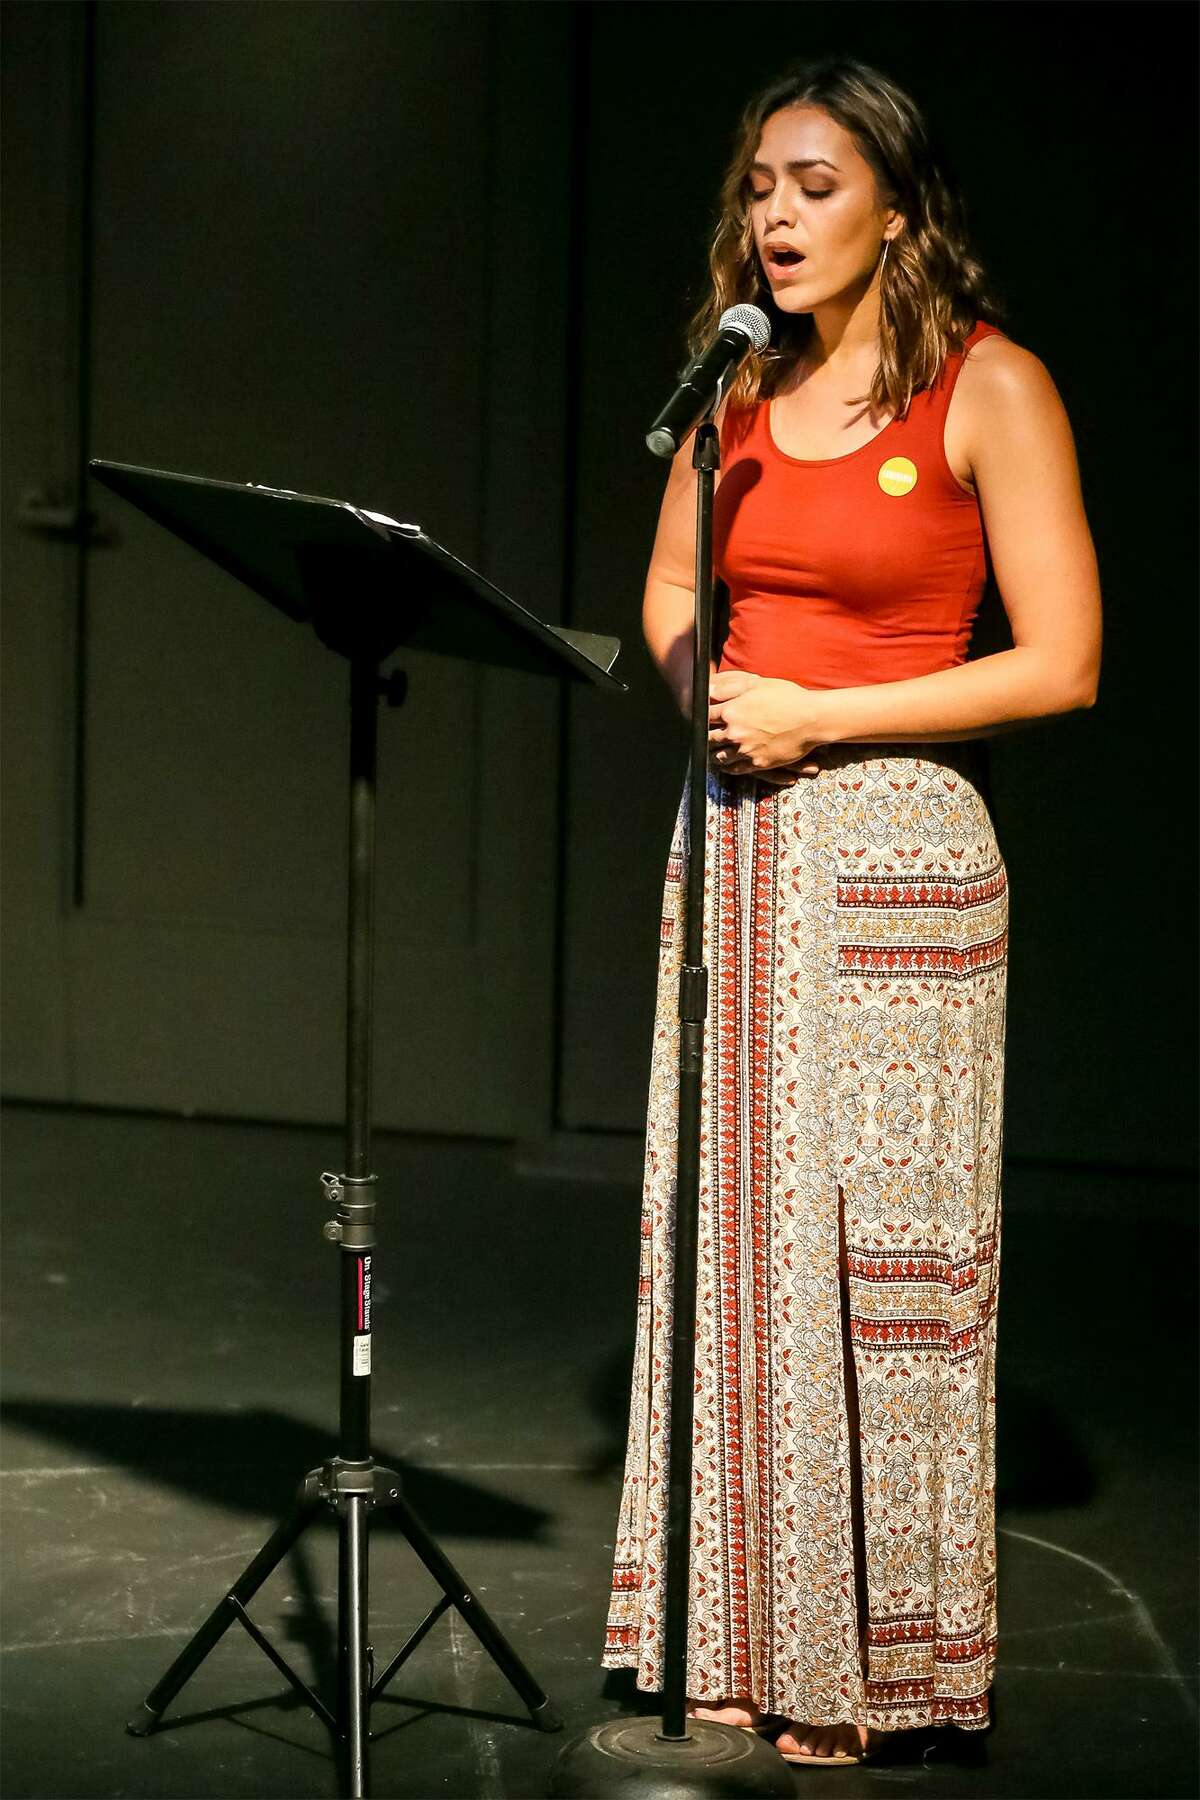 """Celeste Ramirez sings """"Lone Star,"""" a song written by music director and composer Nathan Felix, at Tuesday's Luminaria press conference."""